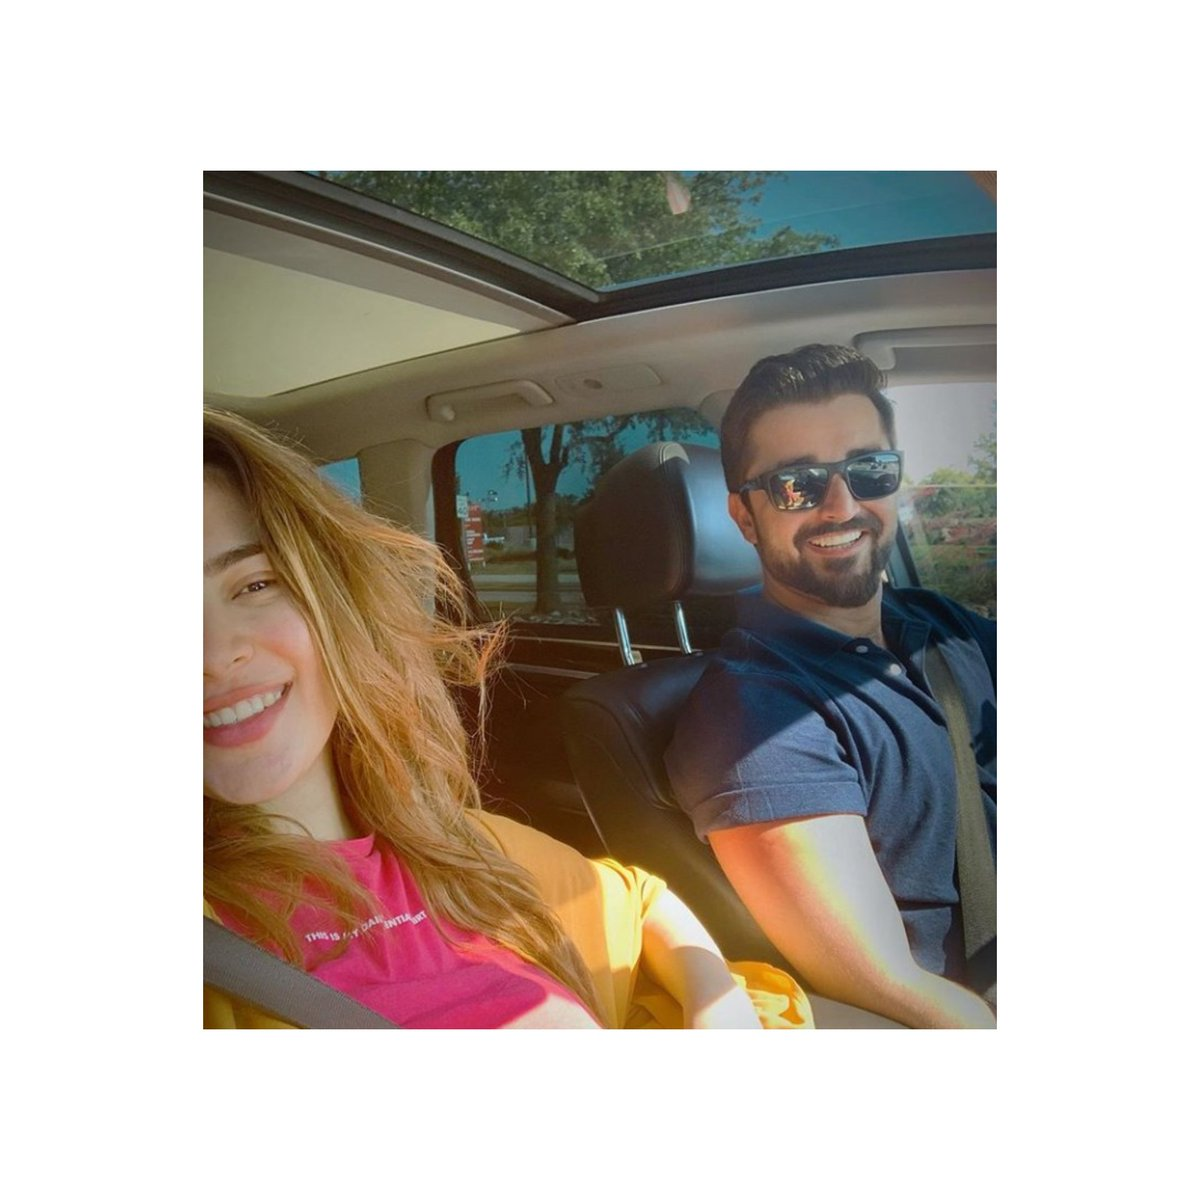 OH MY POOR HEART JUST LOOK AT HAMZA #Haimal #CoupleGoals pic.twitter.com/dLythUQFL6